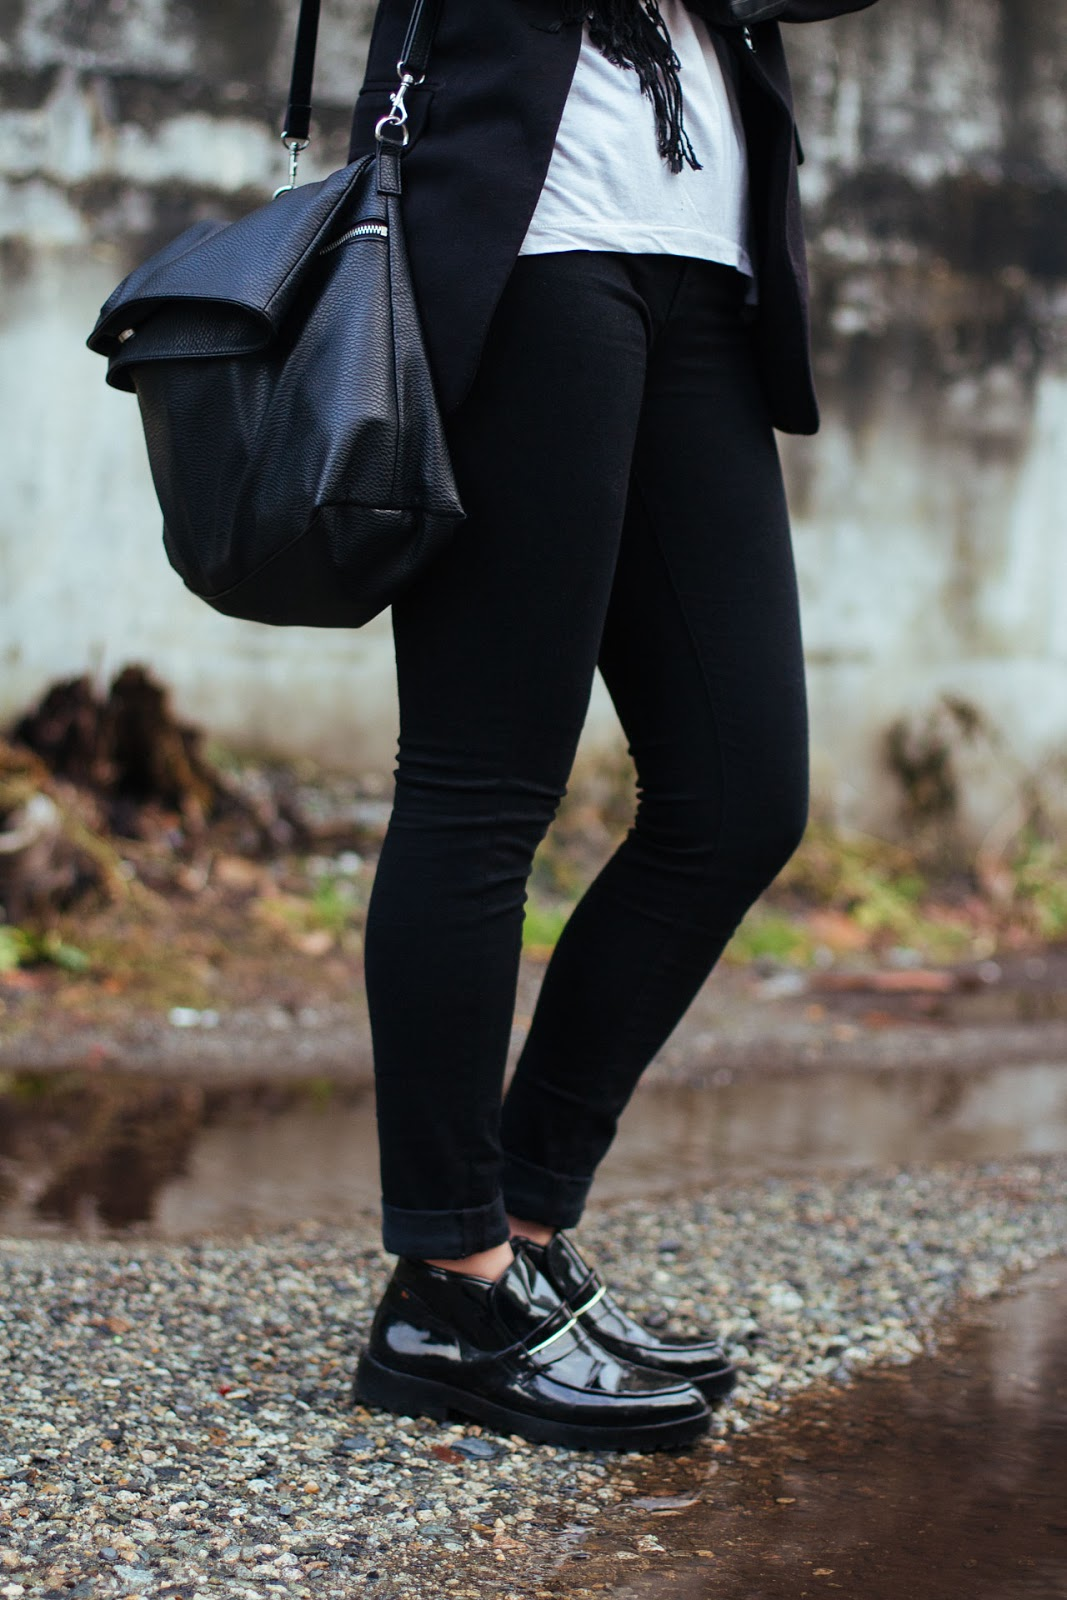 Canadian Fashion and Personal Style Blogger - Outfit details